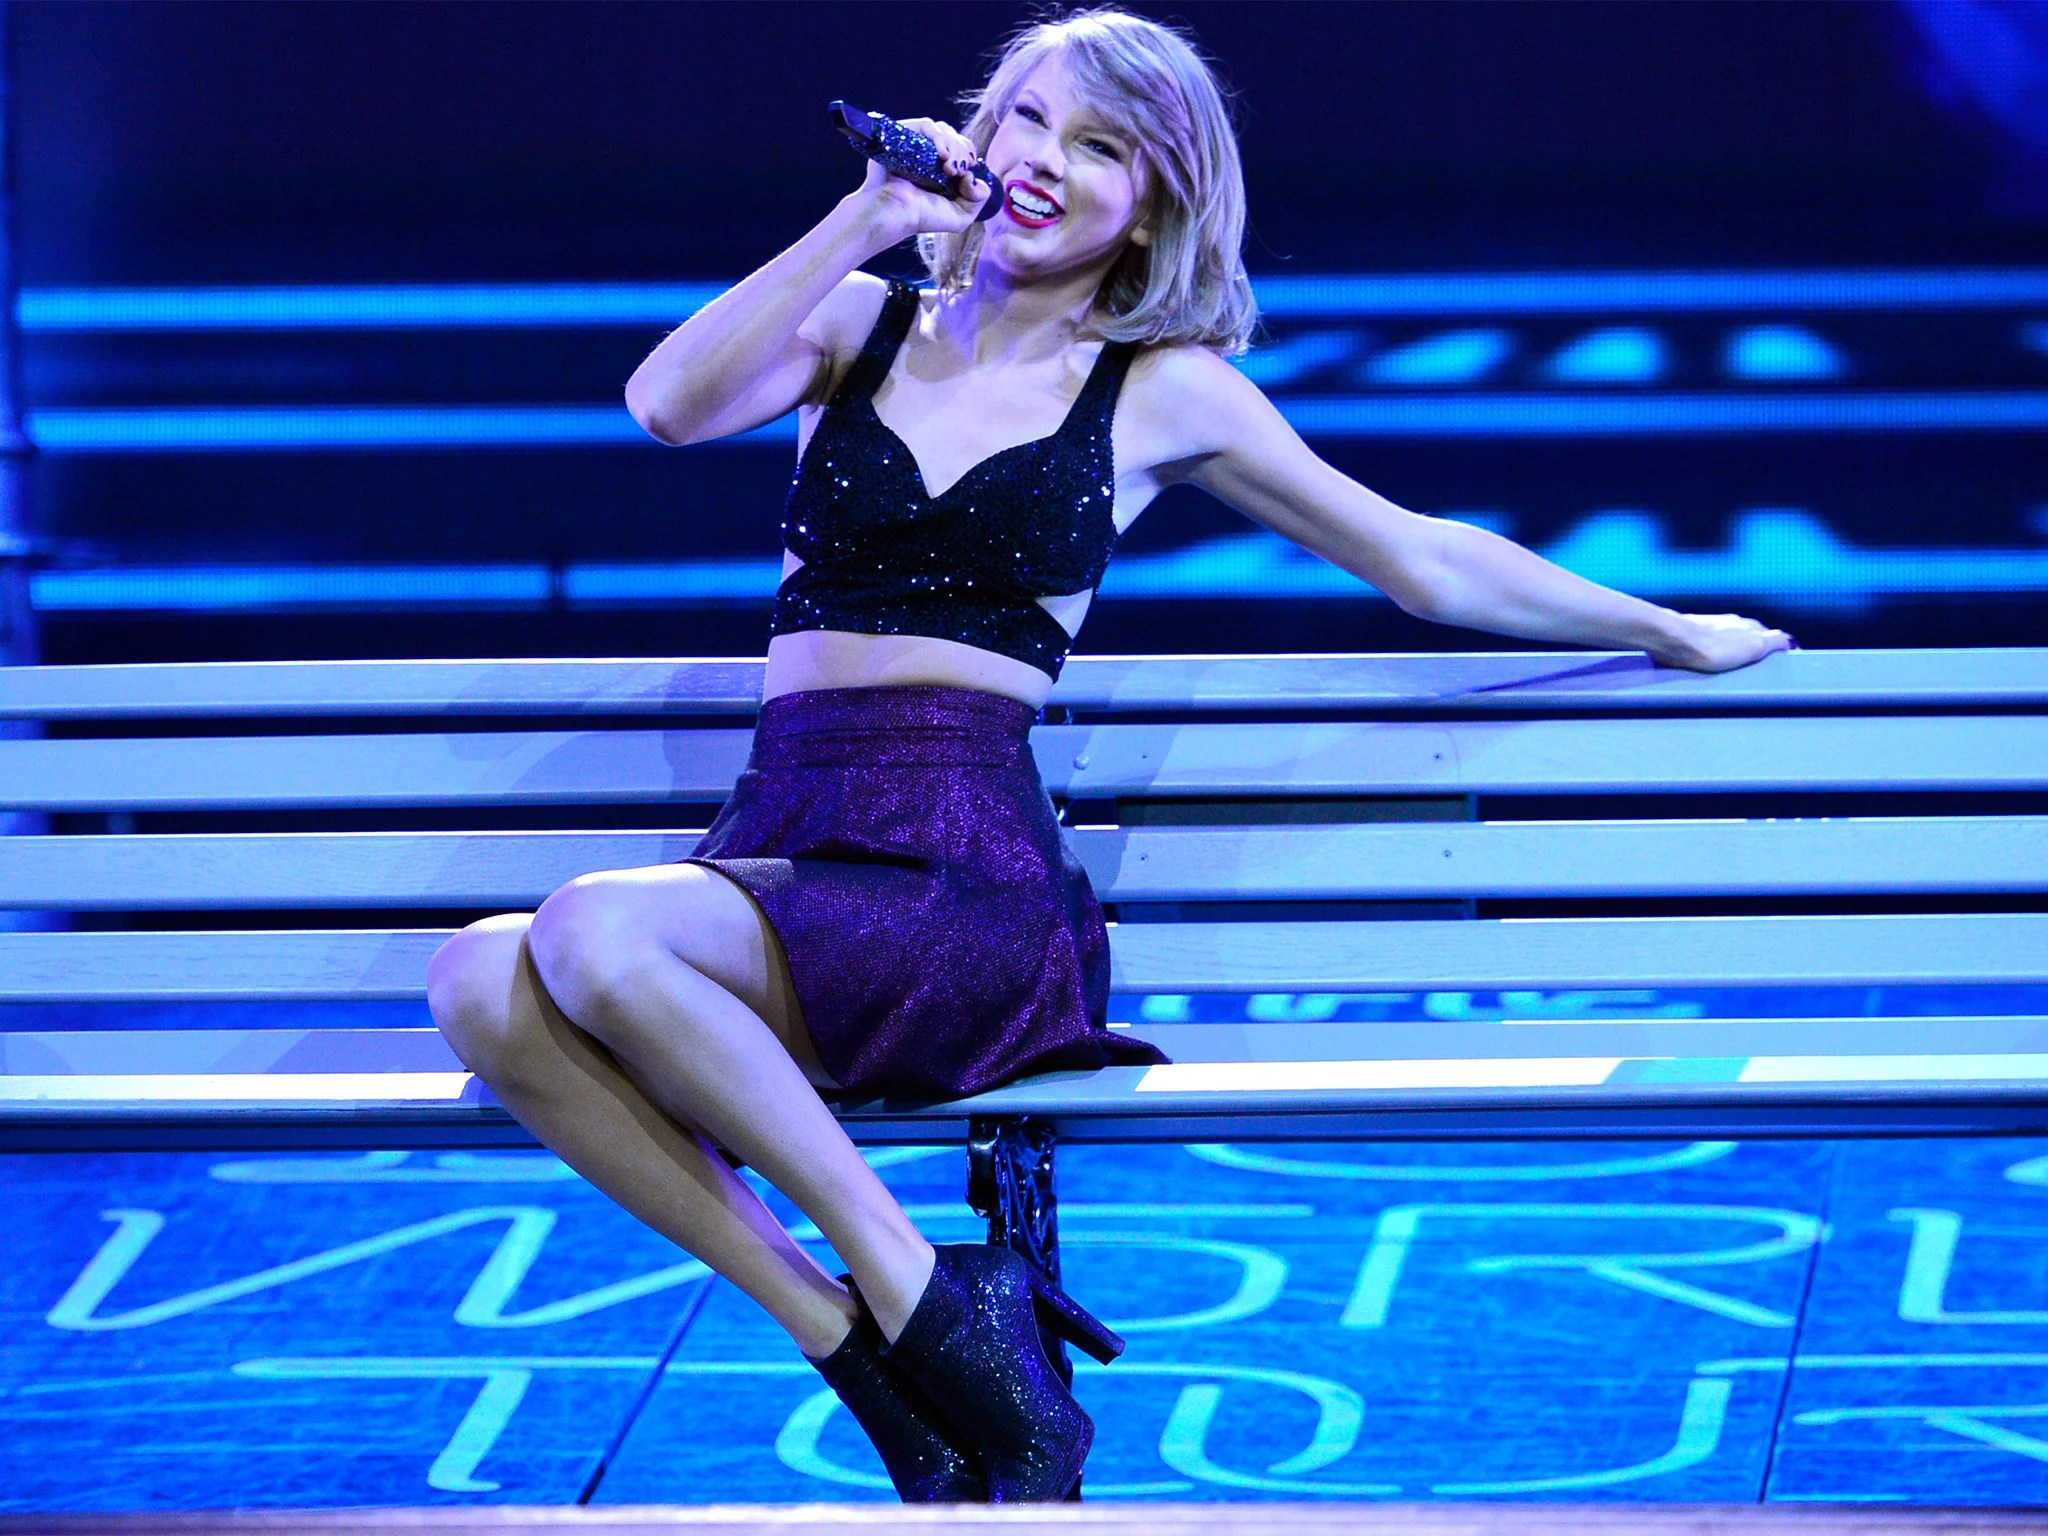 Taylor Swift 1989 Quotes Wallpaper Taylor Swift Reveals Scottish Heritage At Packed Glasgow